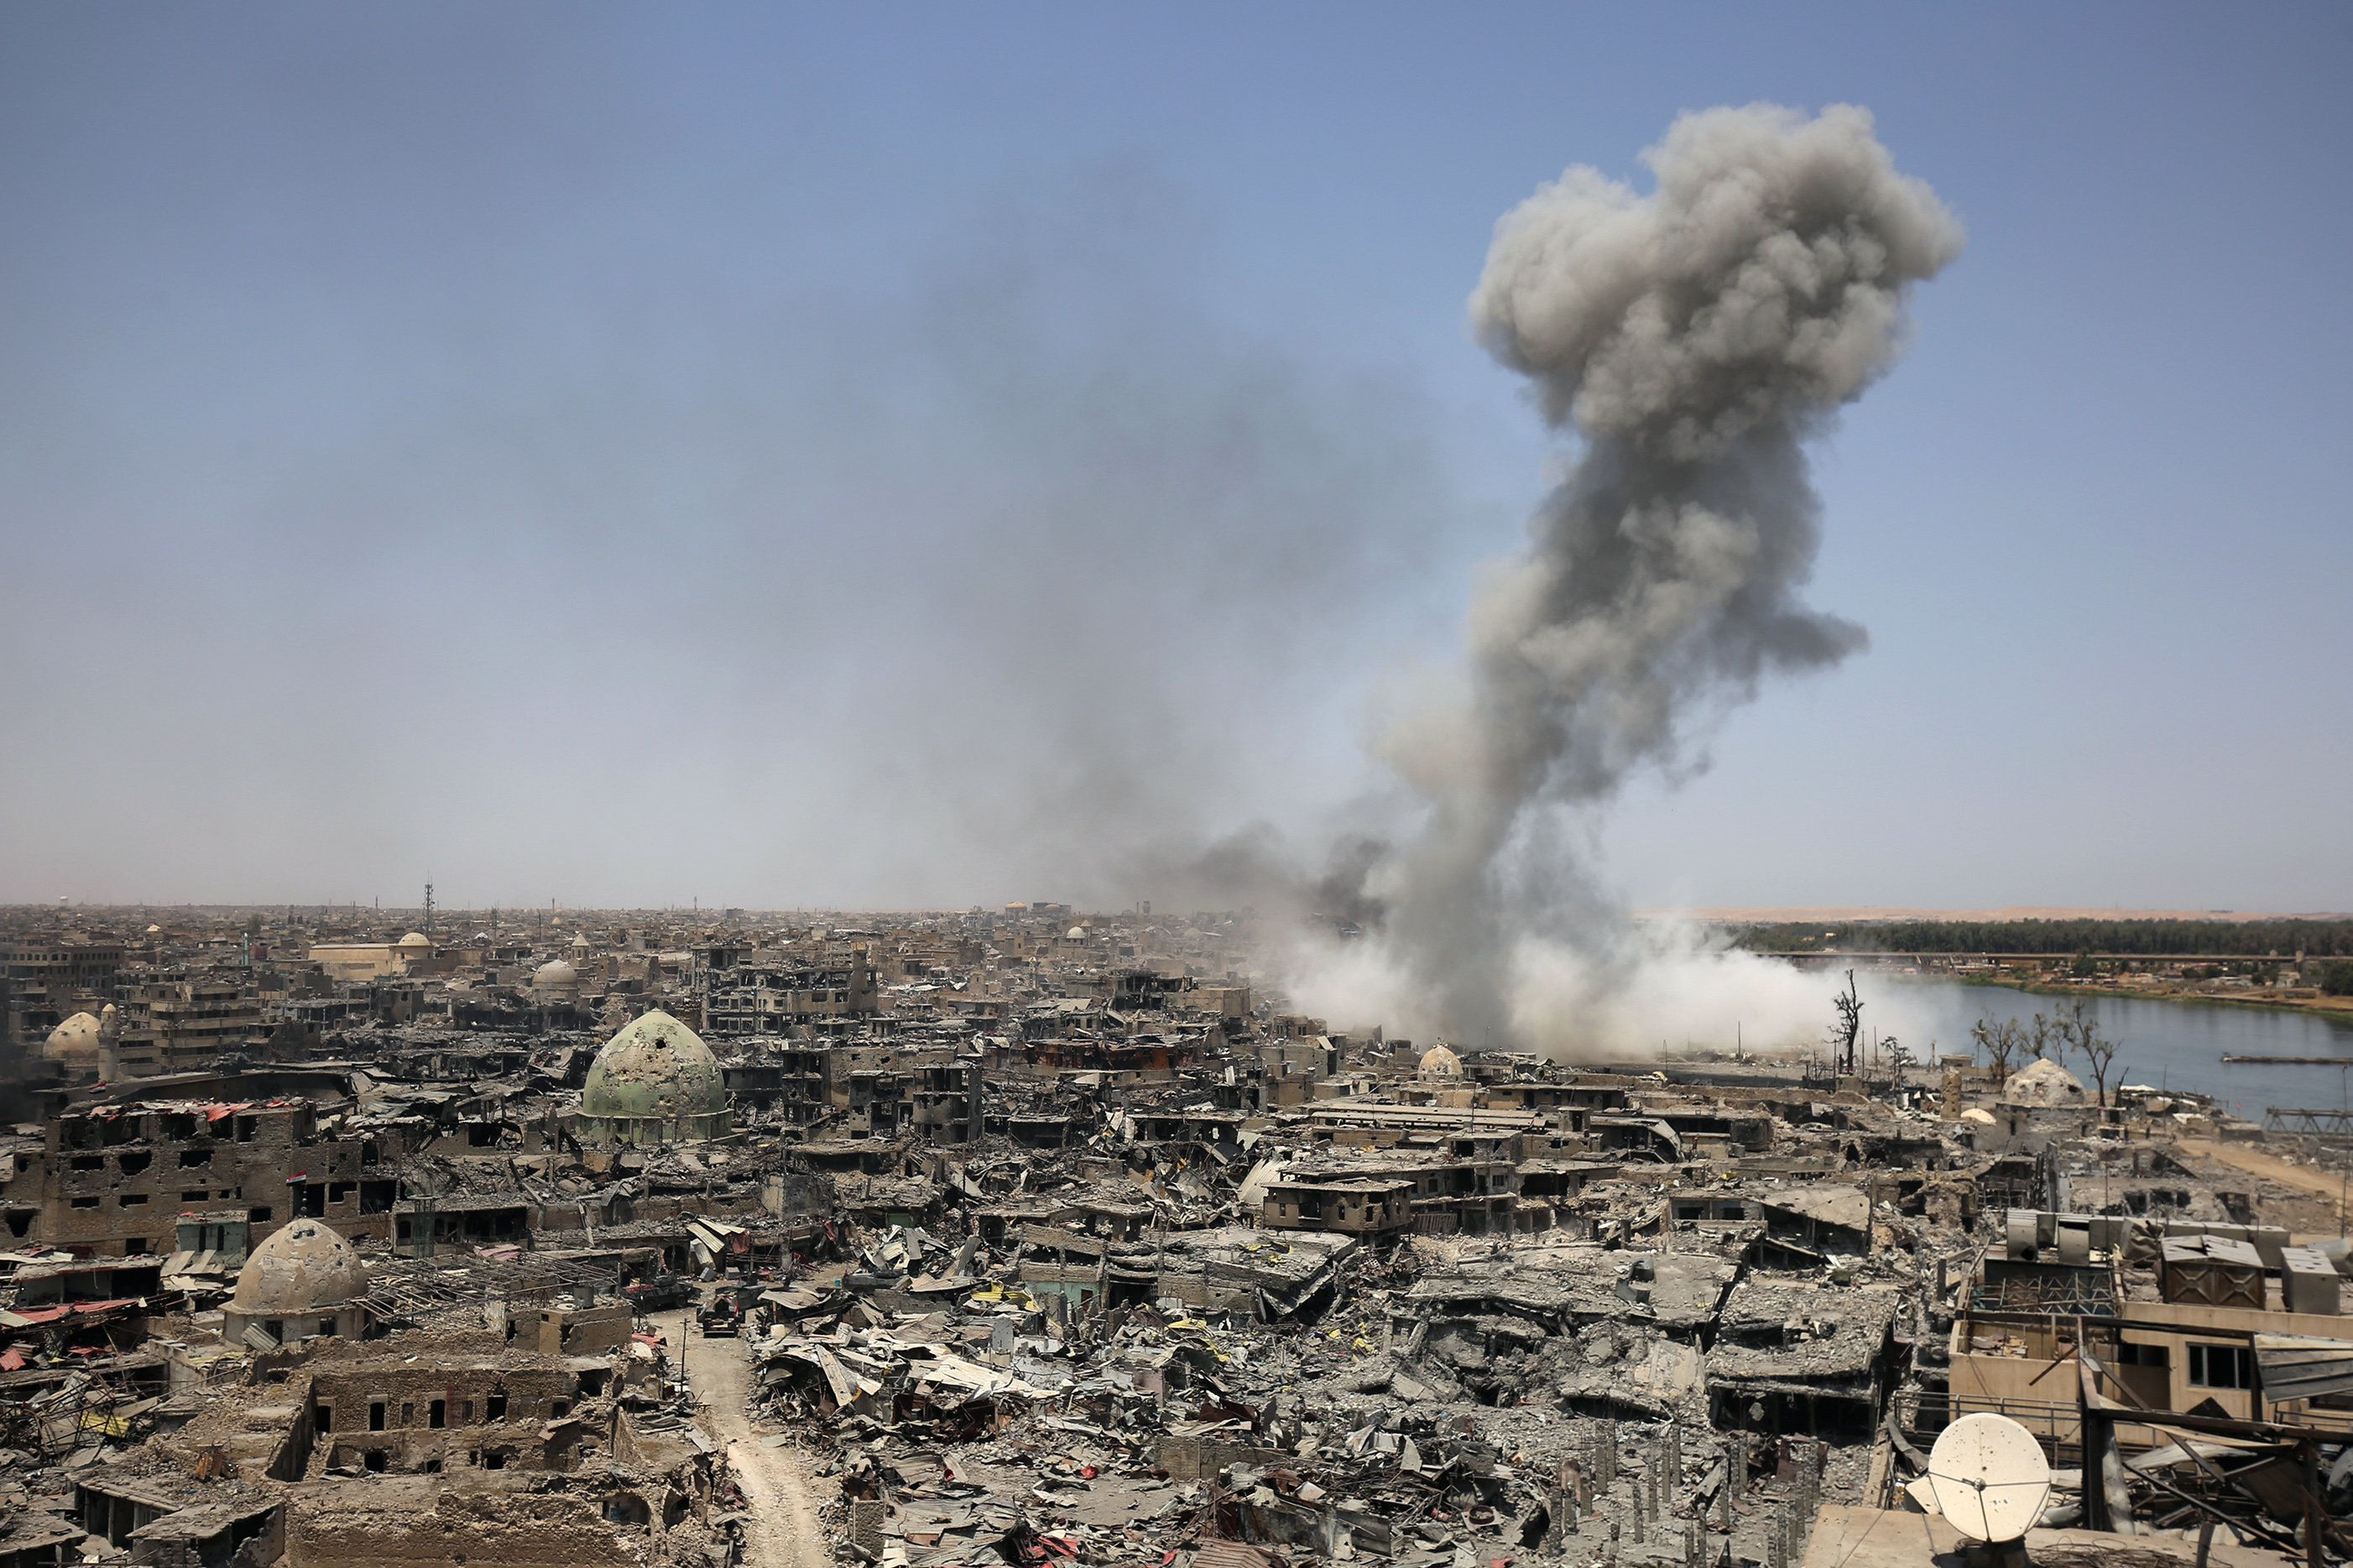 Victory in Mosul 'about to be announced', Iraq state TV claims